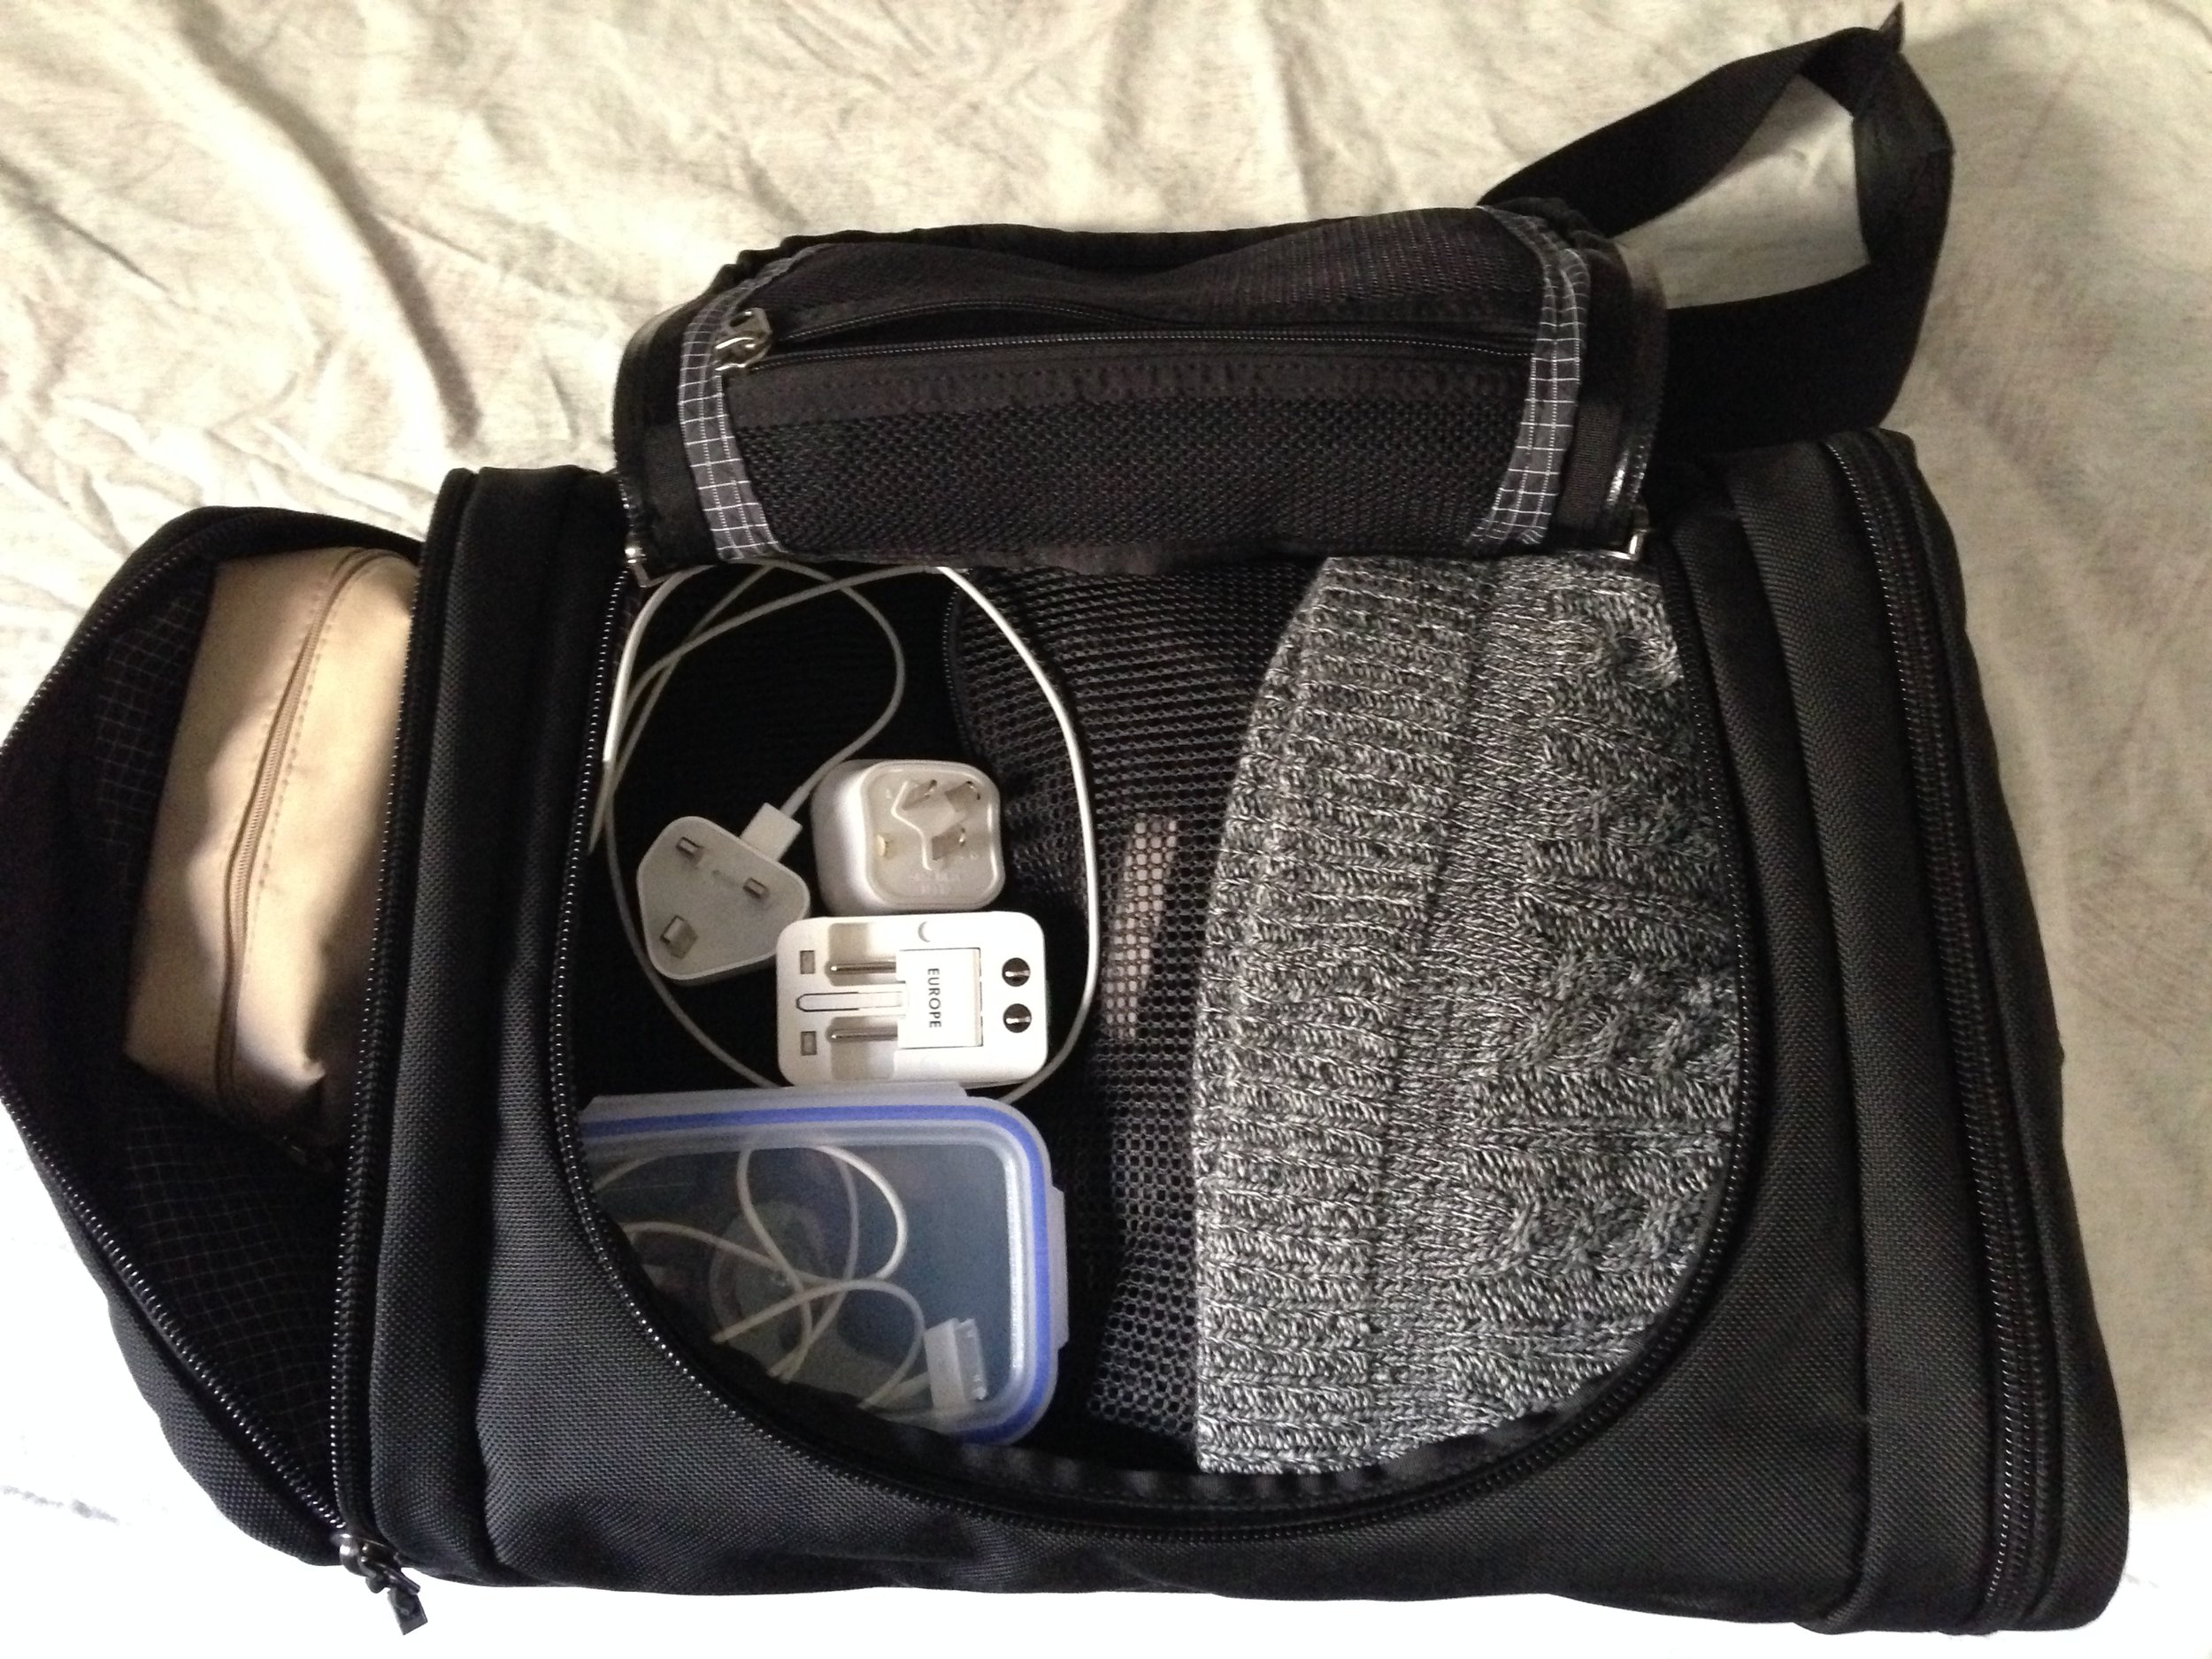 Travel with less than 5kg for 5 days